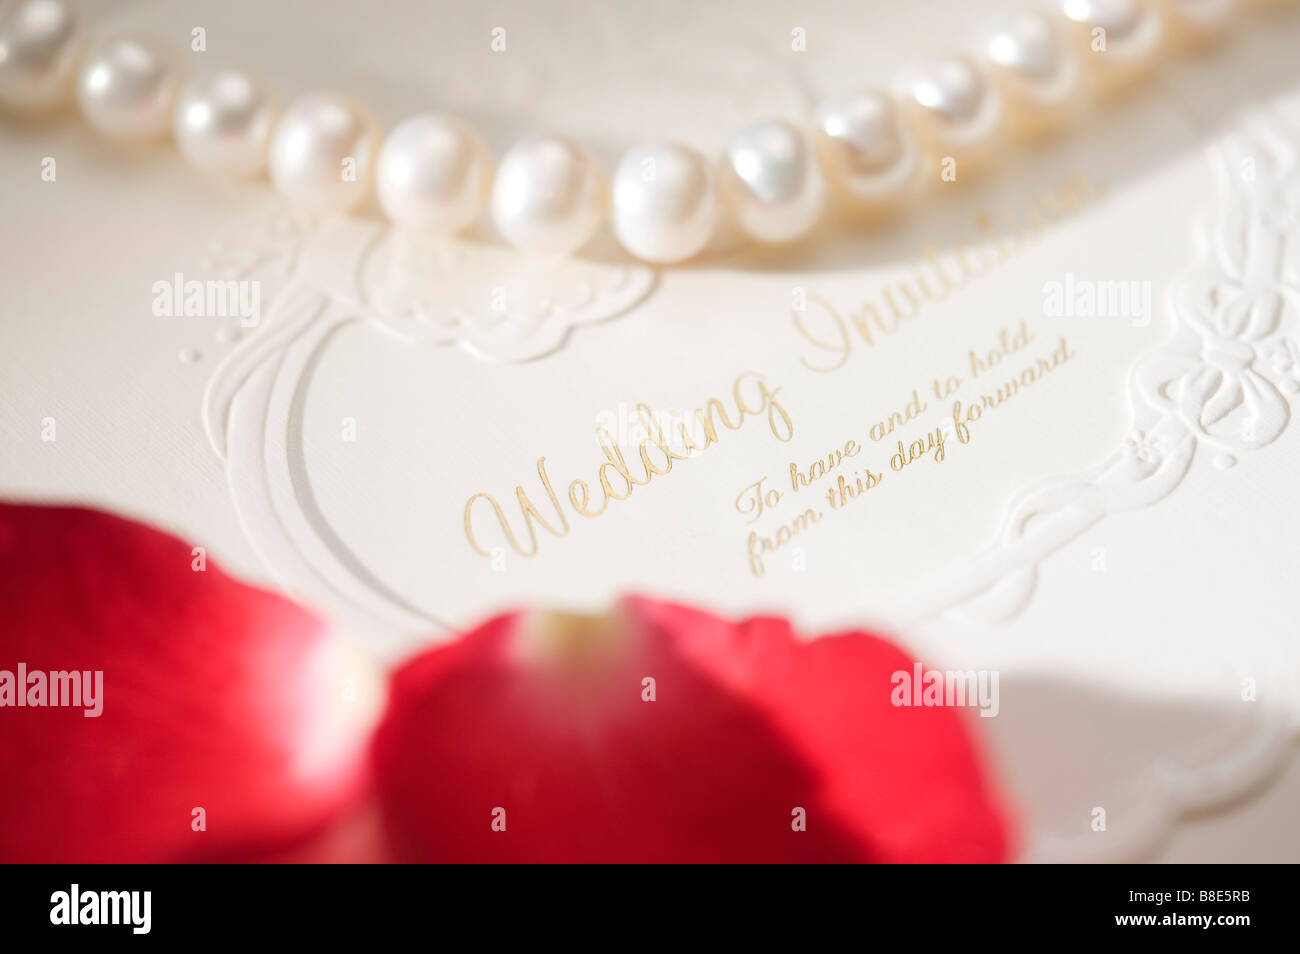 Pearl necklace and rose petals on wedding invitation Stock Photo ...